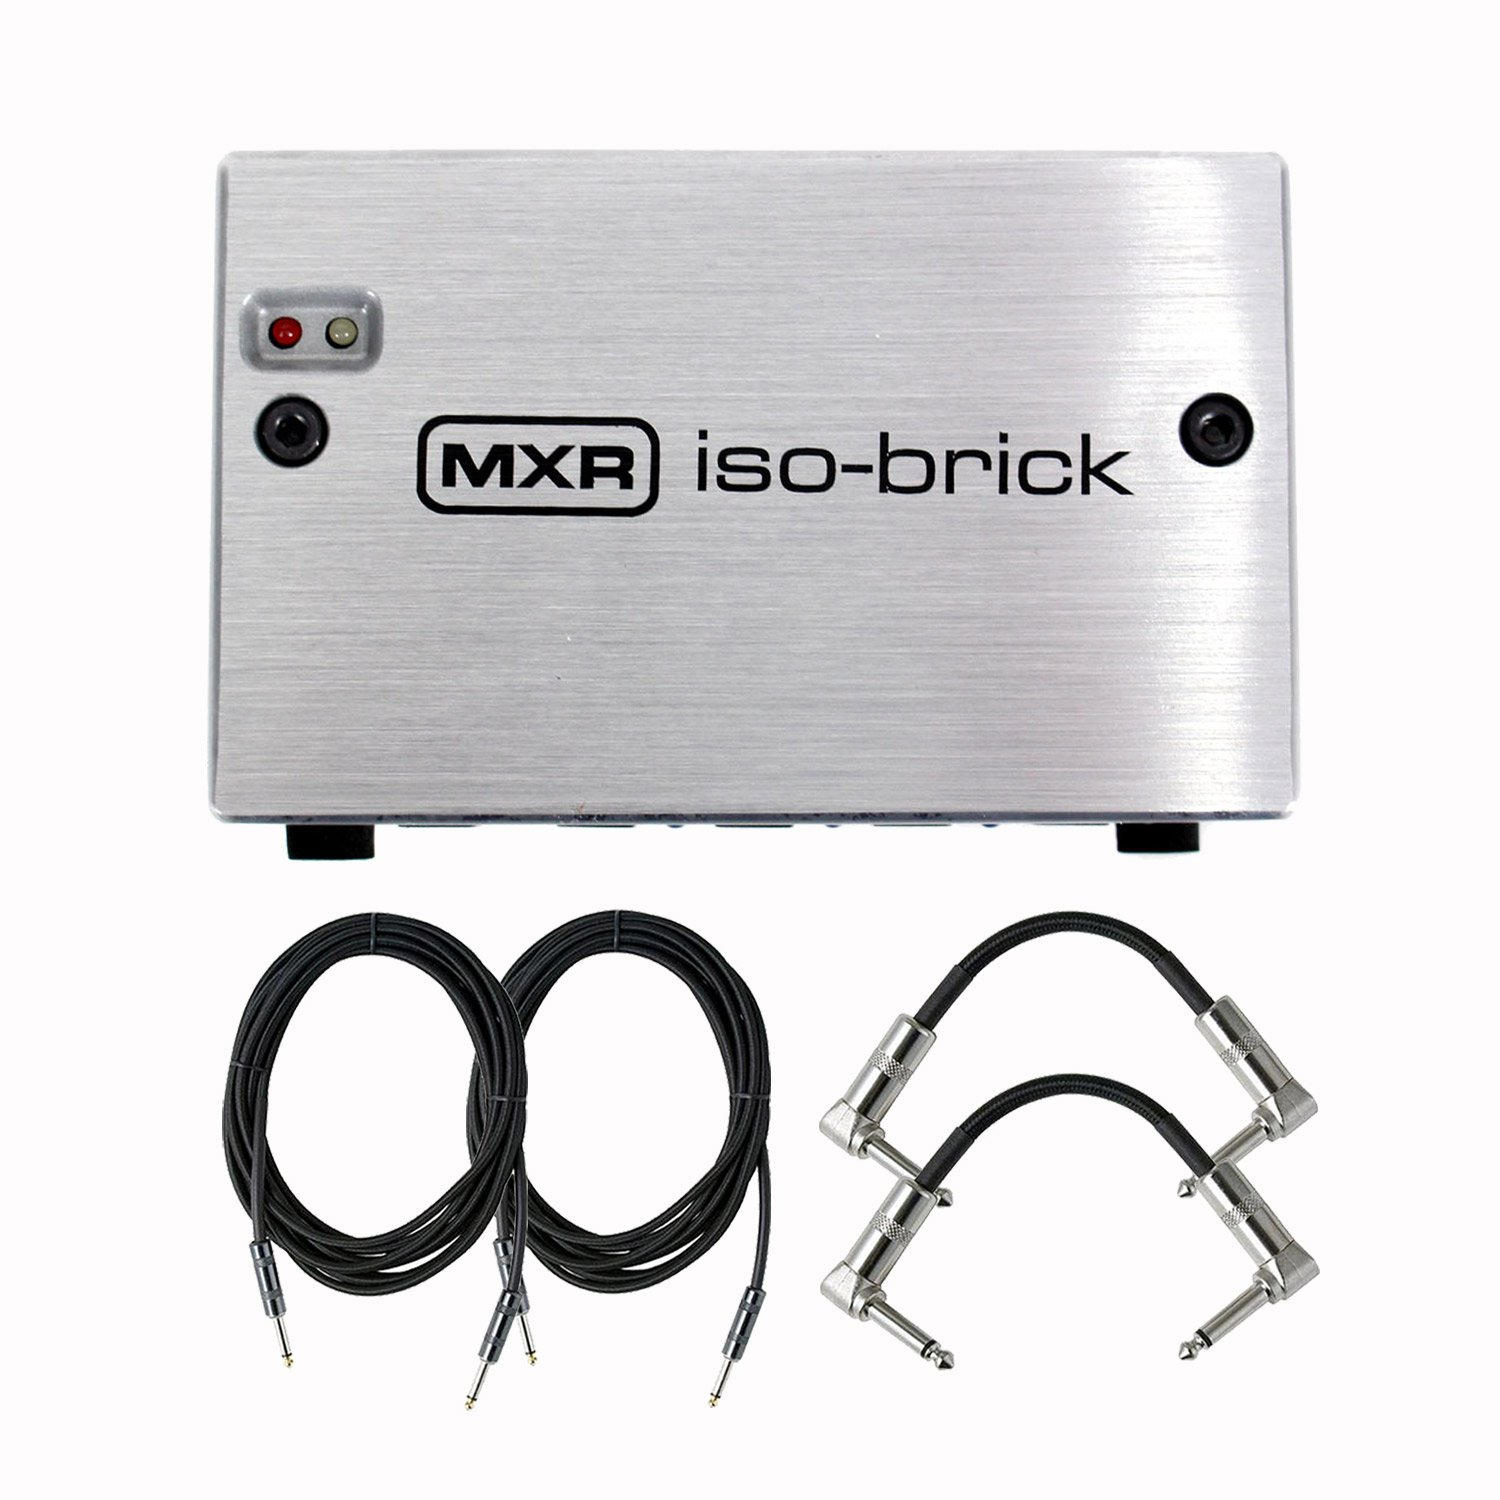 Dunlop MXR M238 Iso-Brick Power Supply With a Pair of Patch Cables and Instrument Cables